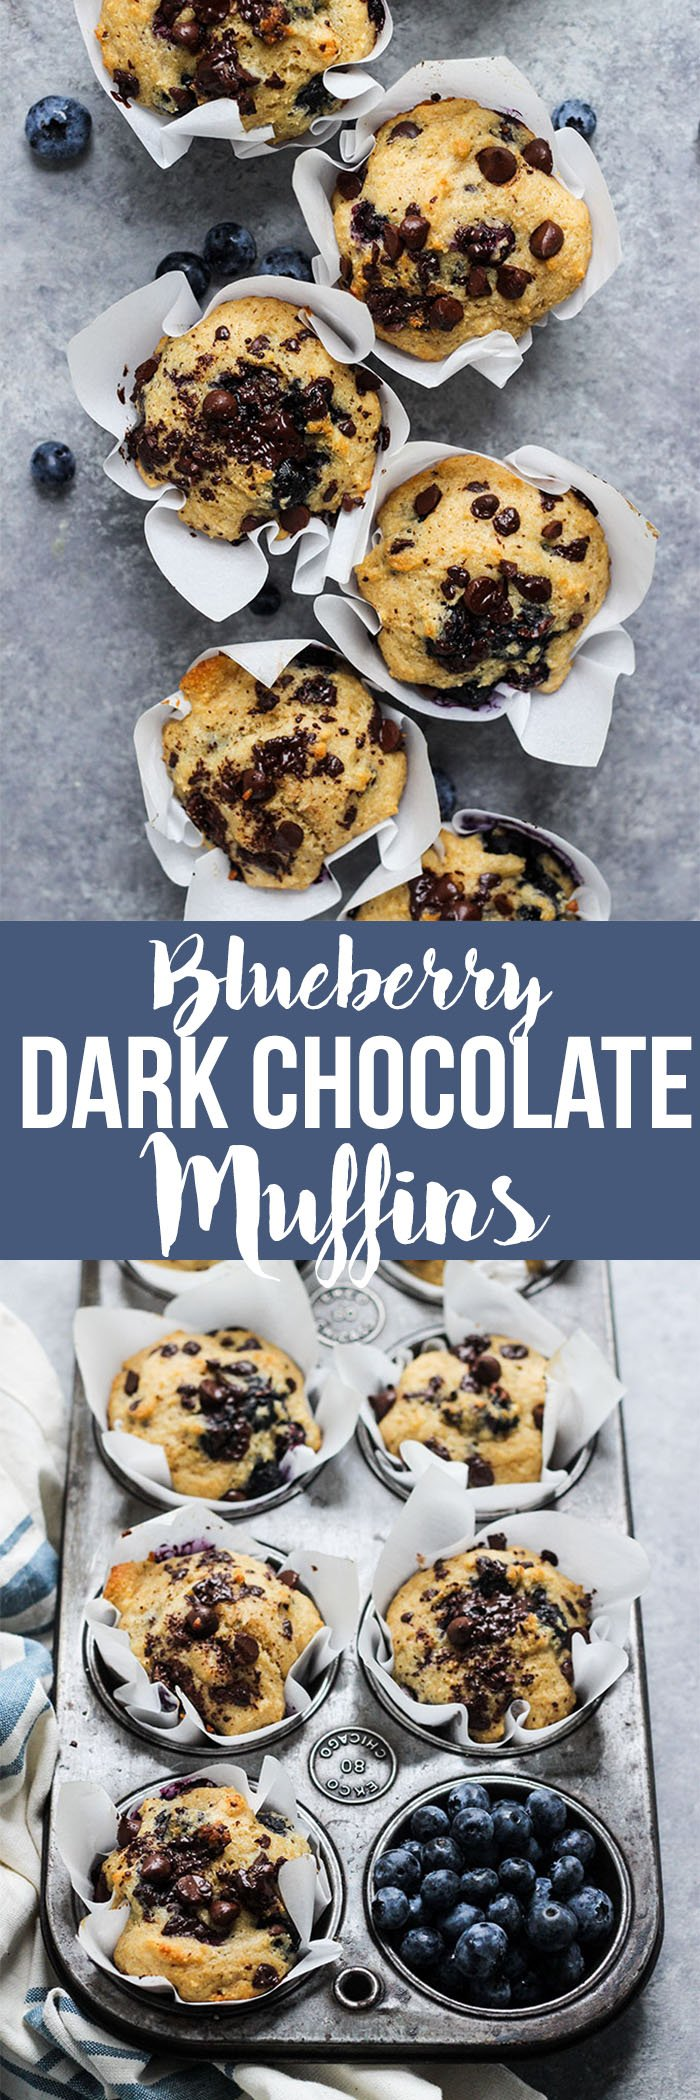 blueberry dark chocolate muffins on gray background